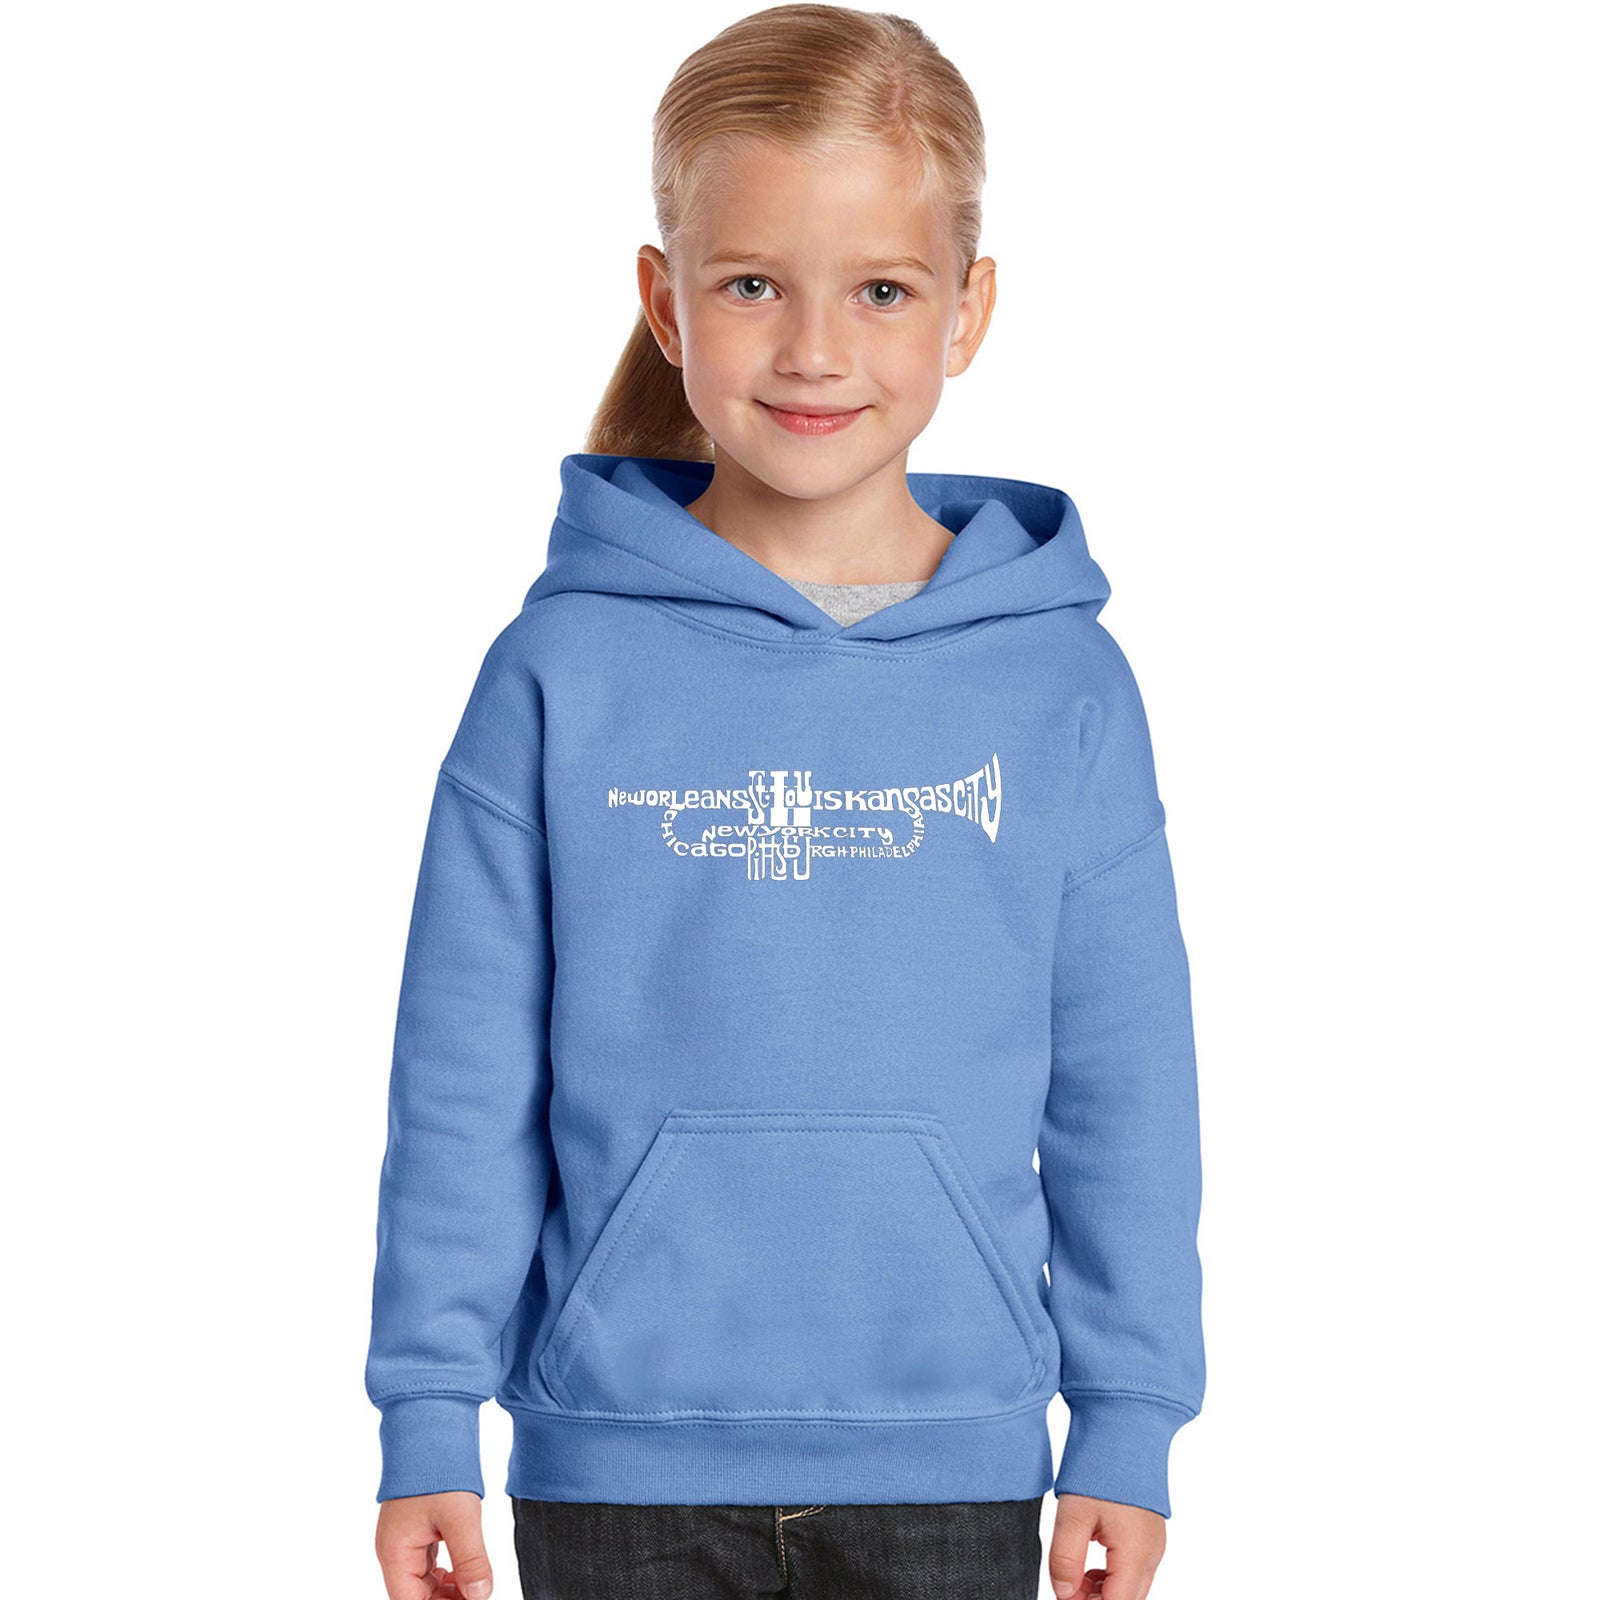 Girl's Word Art Hooded Sweatshirt - Trumpet